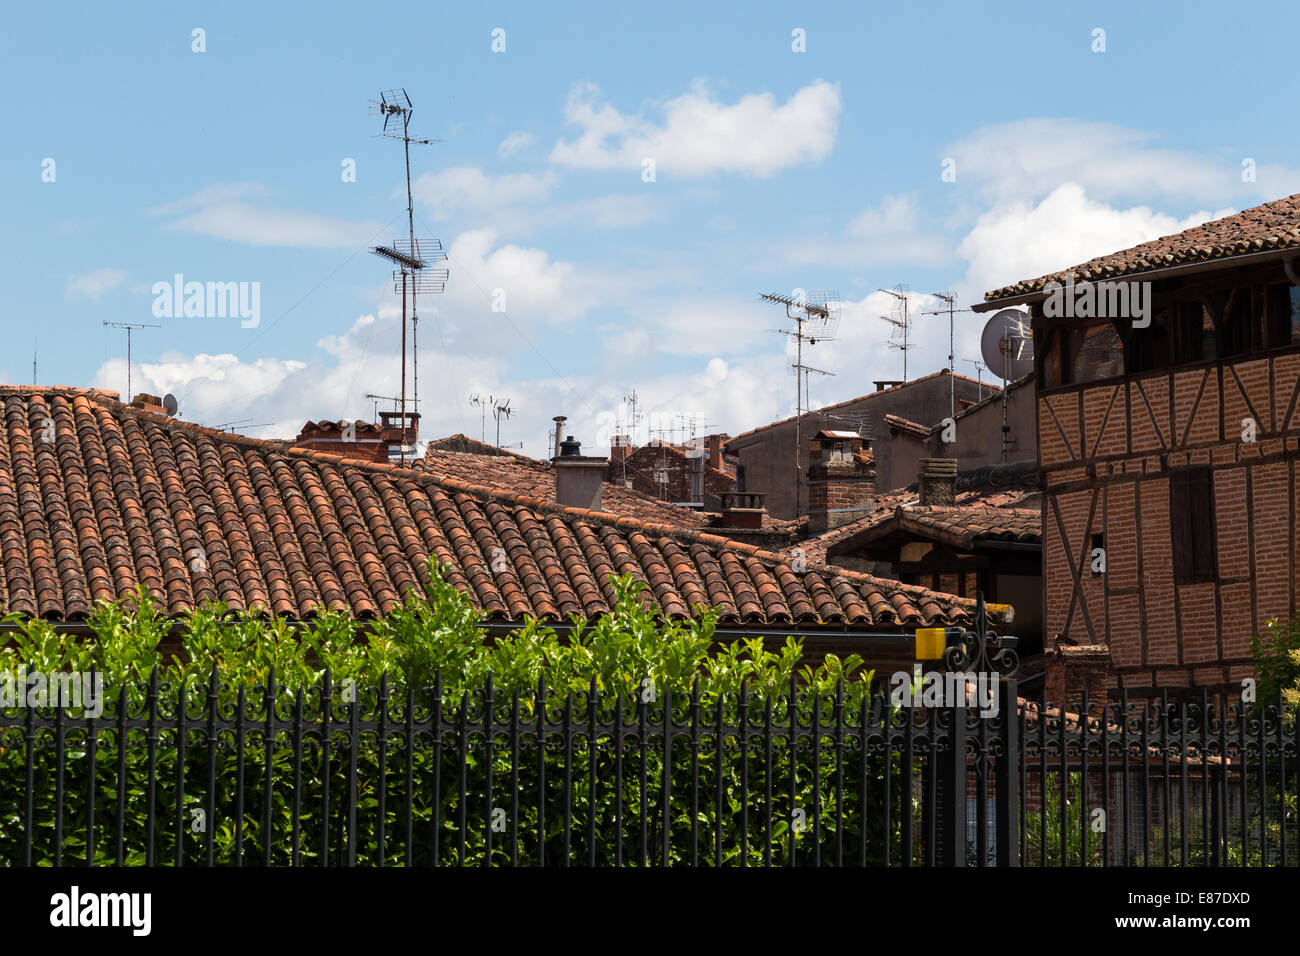 Ariel Photography - Medieval timber framed buildings jostle for position with ariels and satellite dishes in Albi, - Stock Image